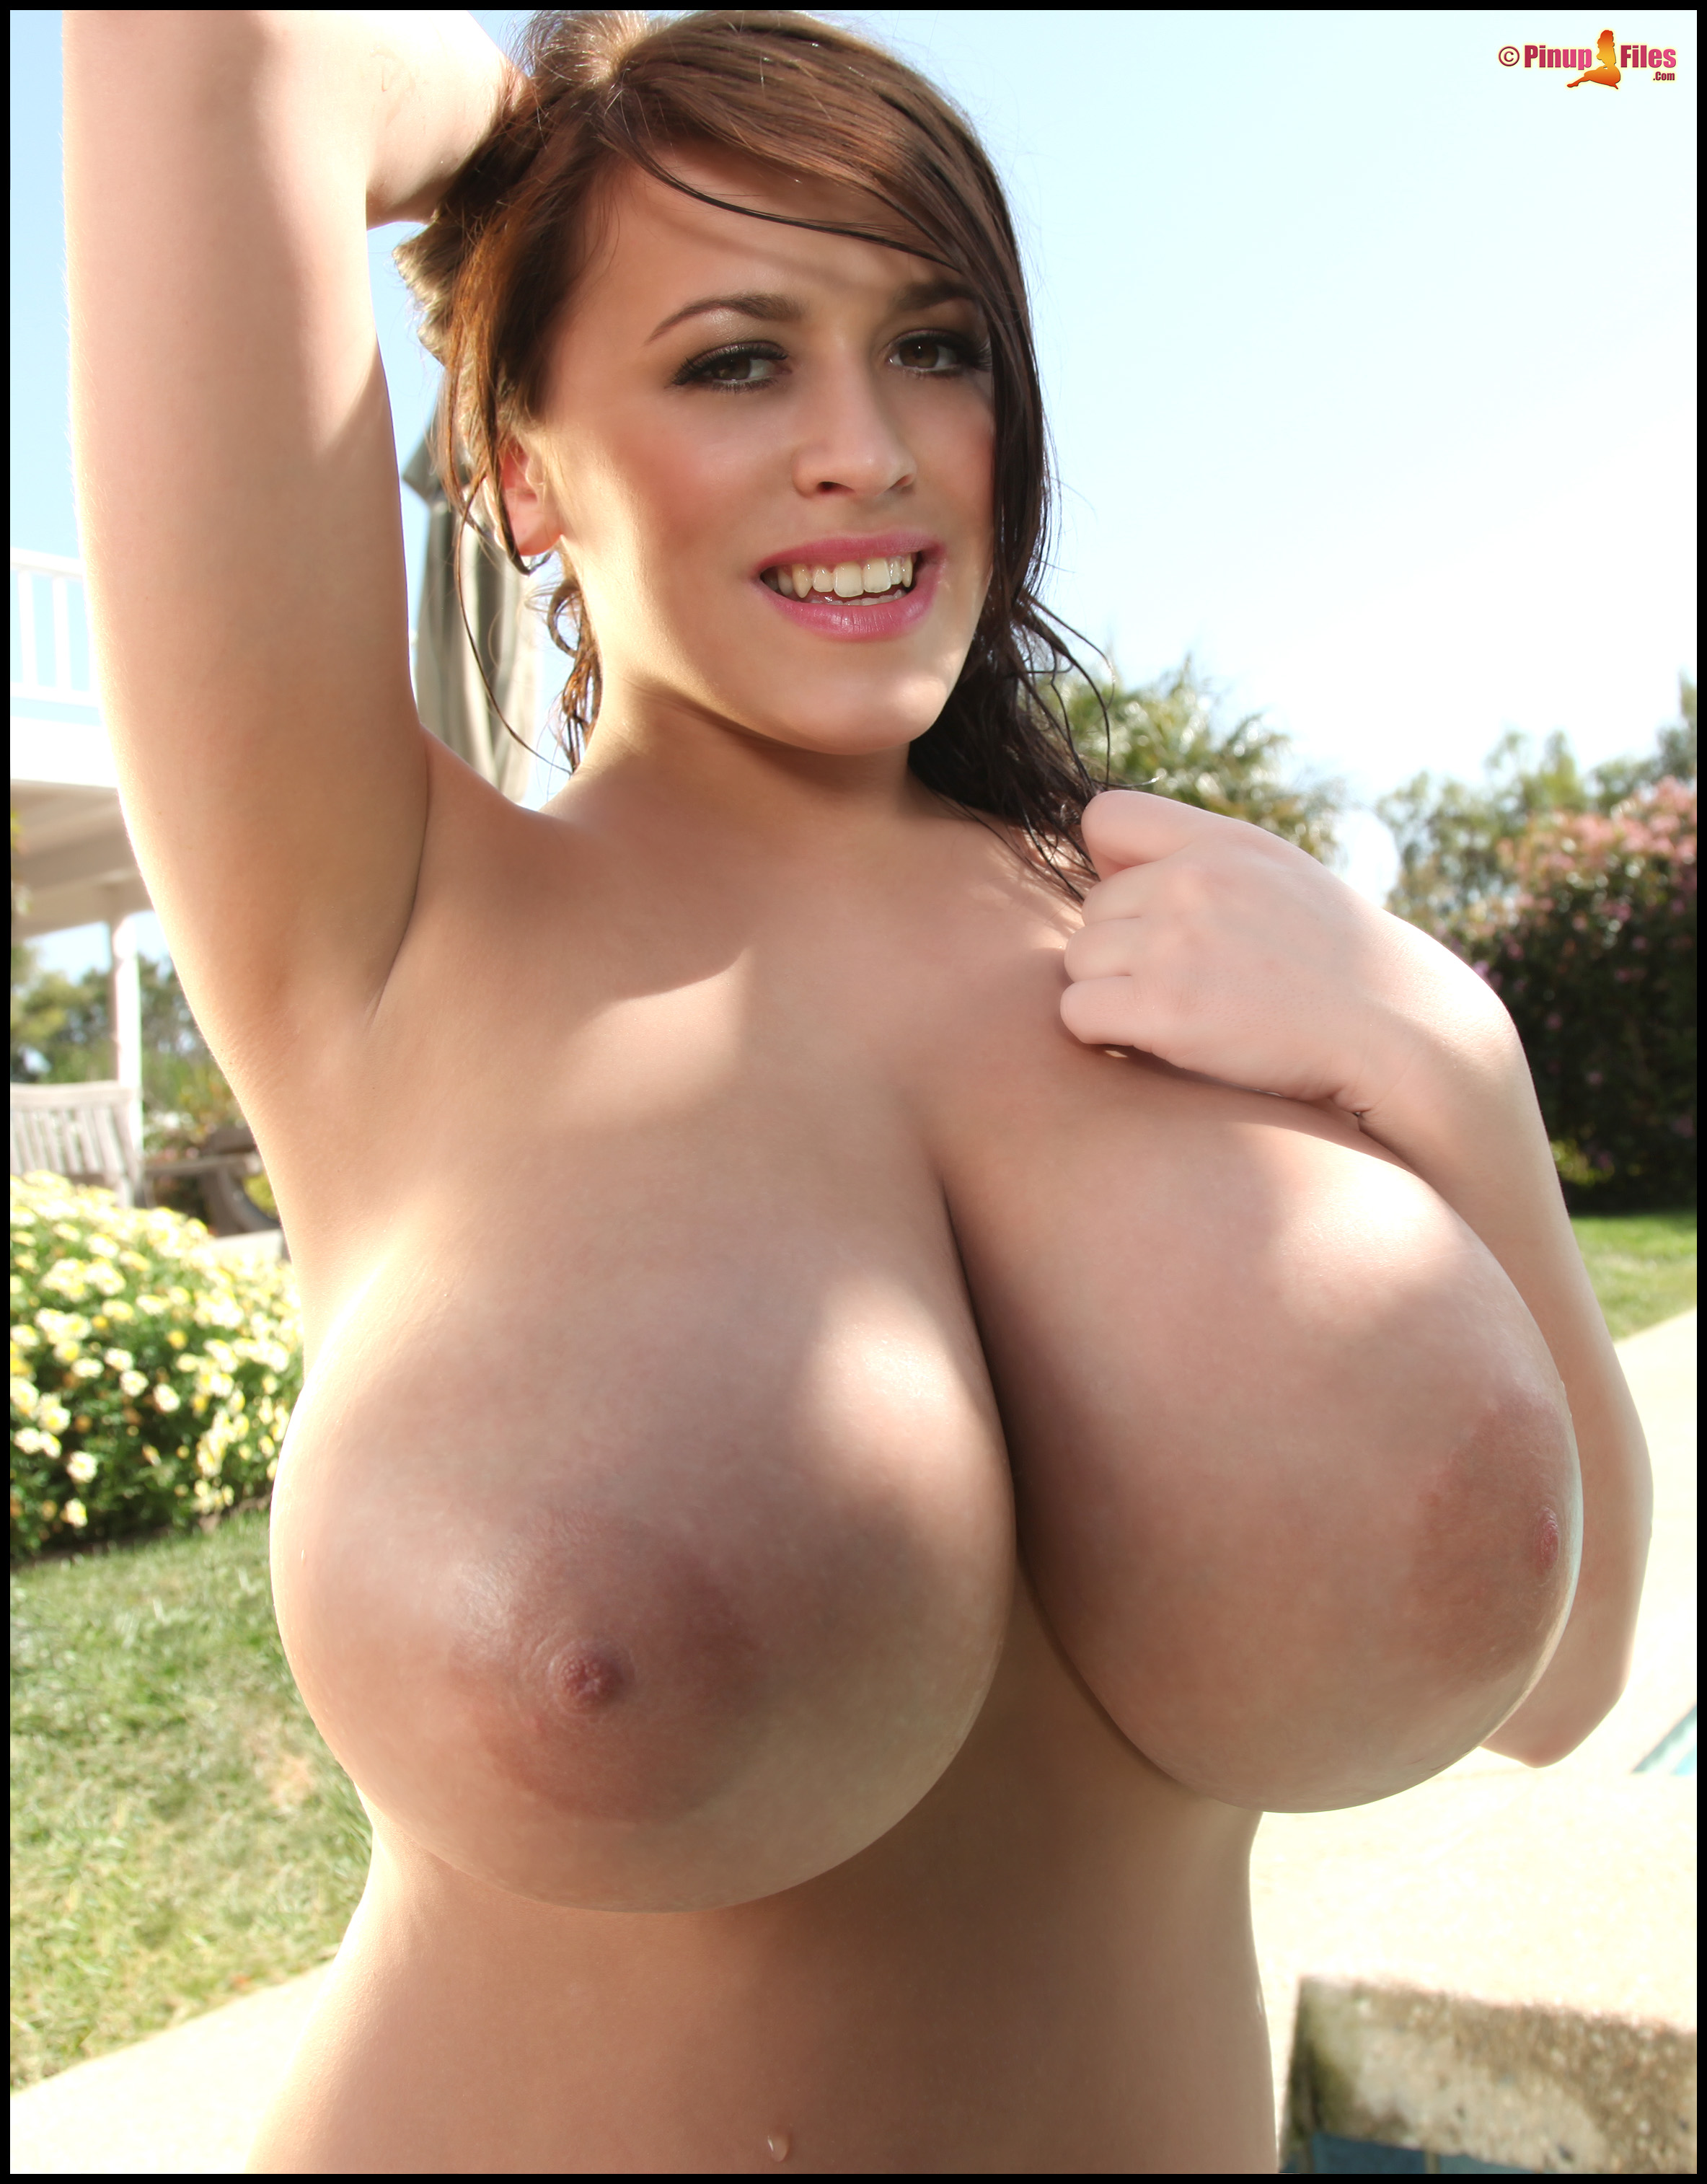 Big tits photos com